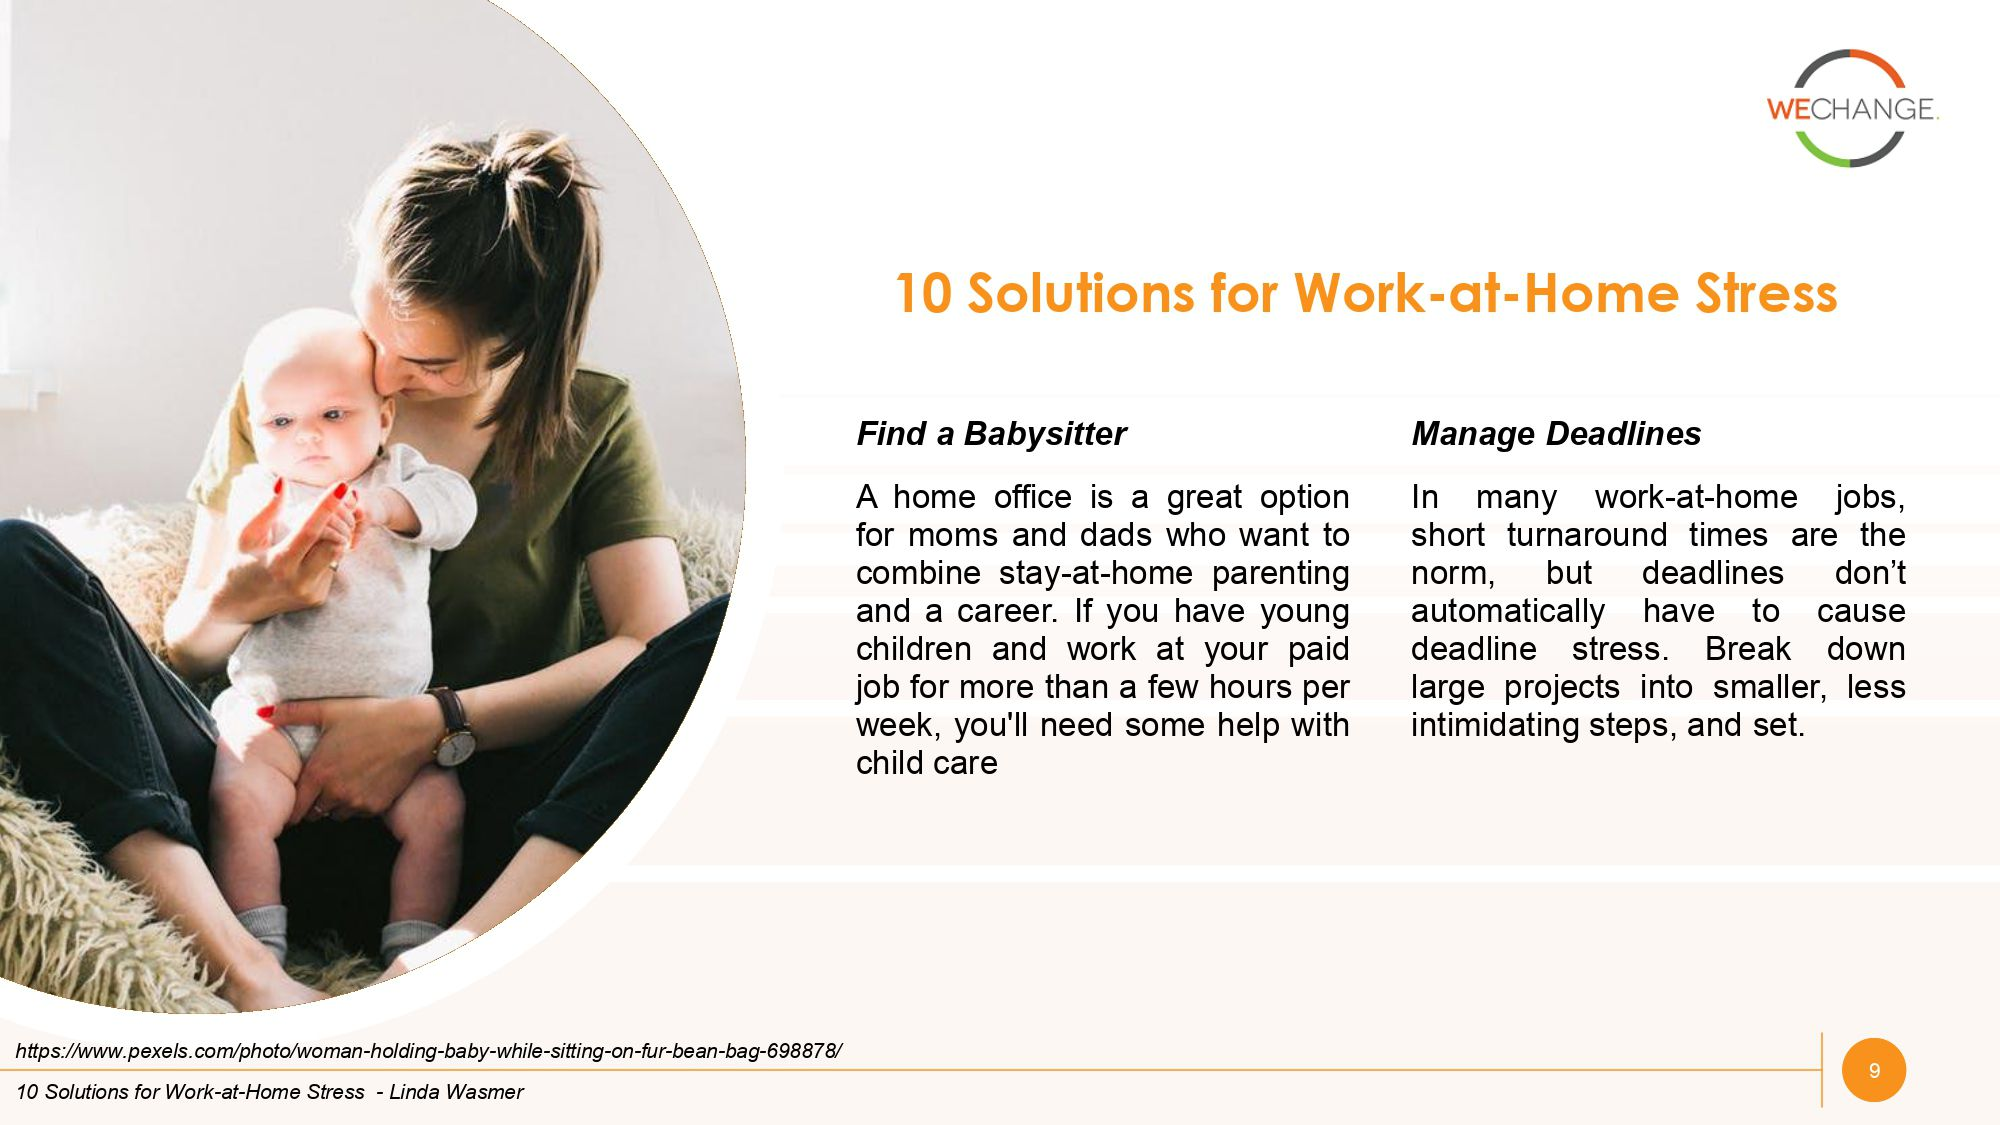 How to deal with employees stress of working from home in corona virus days page 0009 compressed How to deal with employees stress of working from home in corona virus days?